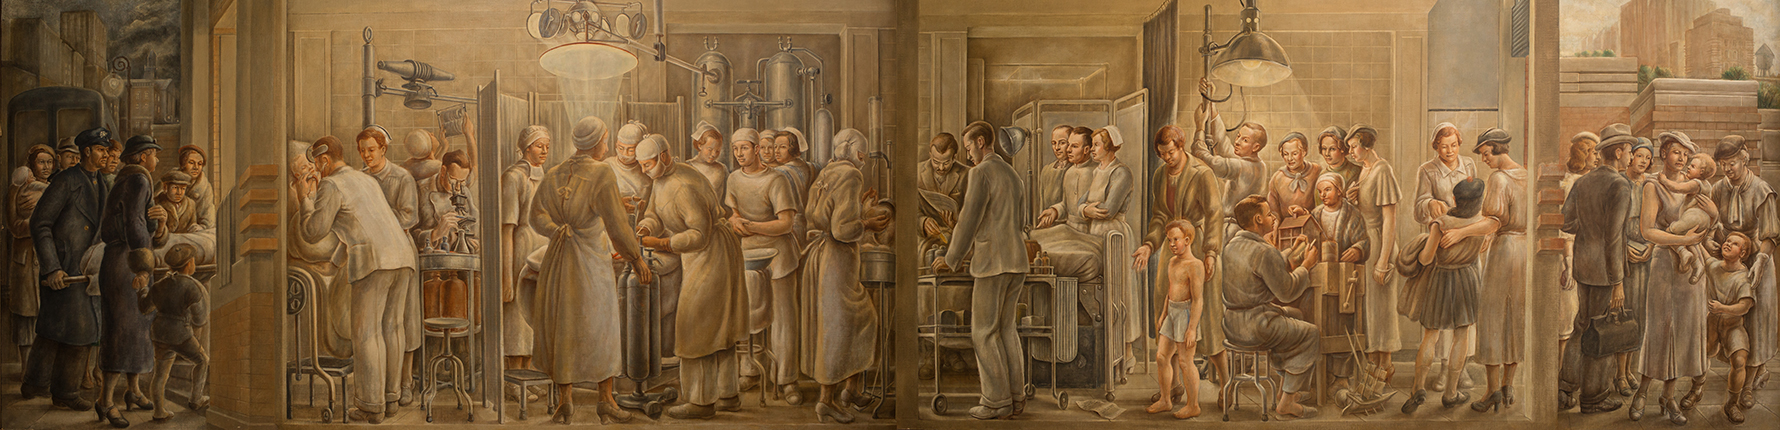 William Palmer, Function of a Hospital, 1934